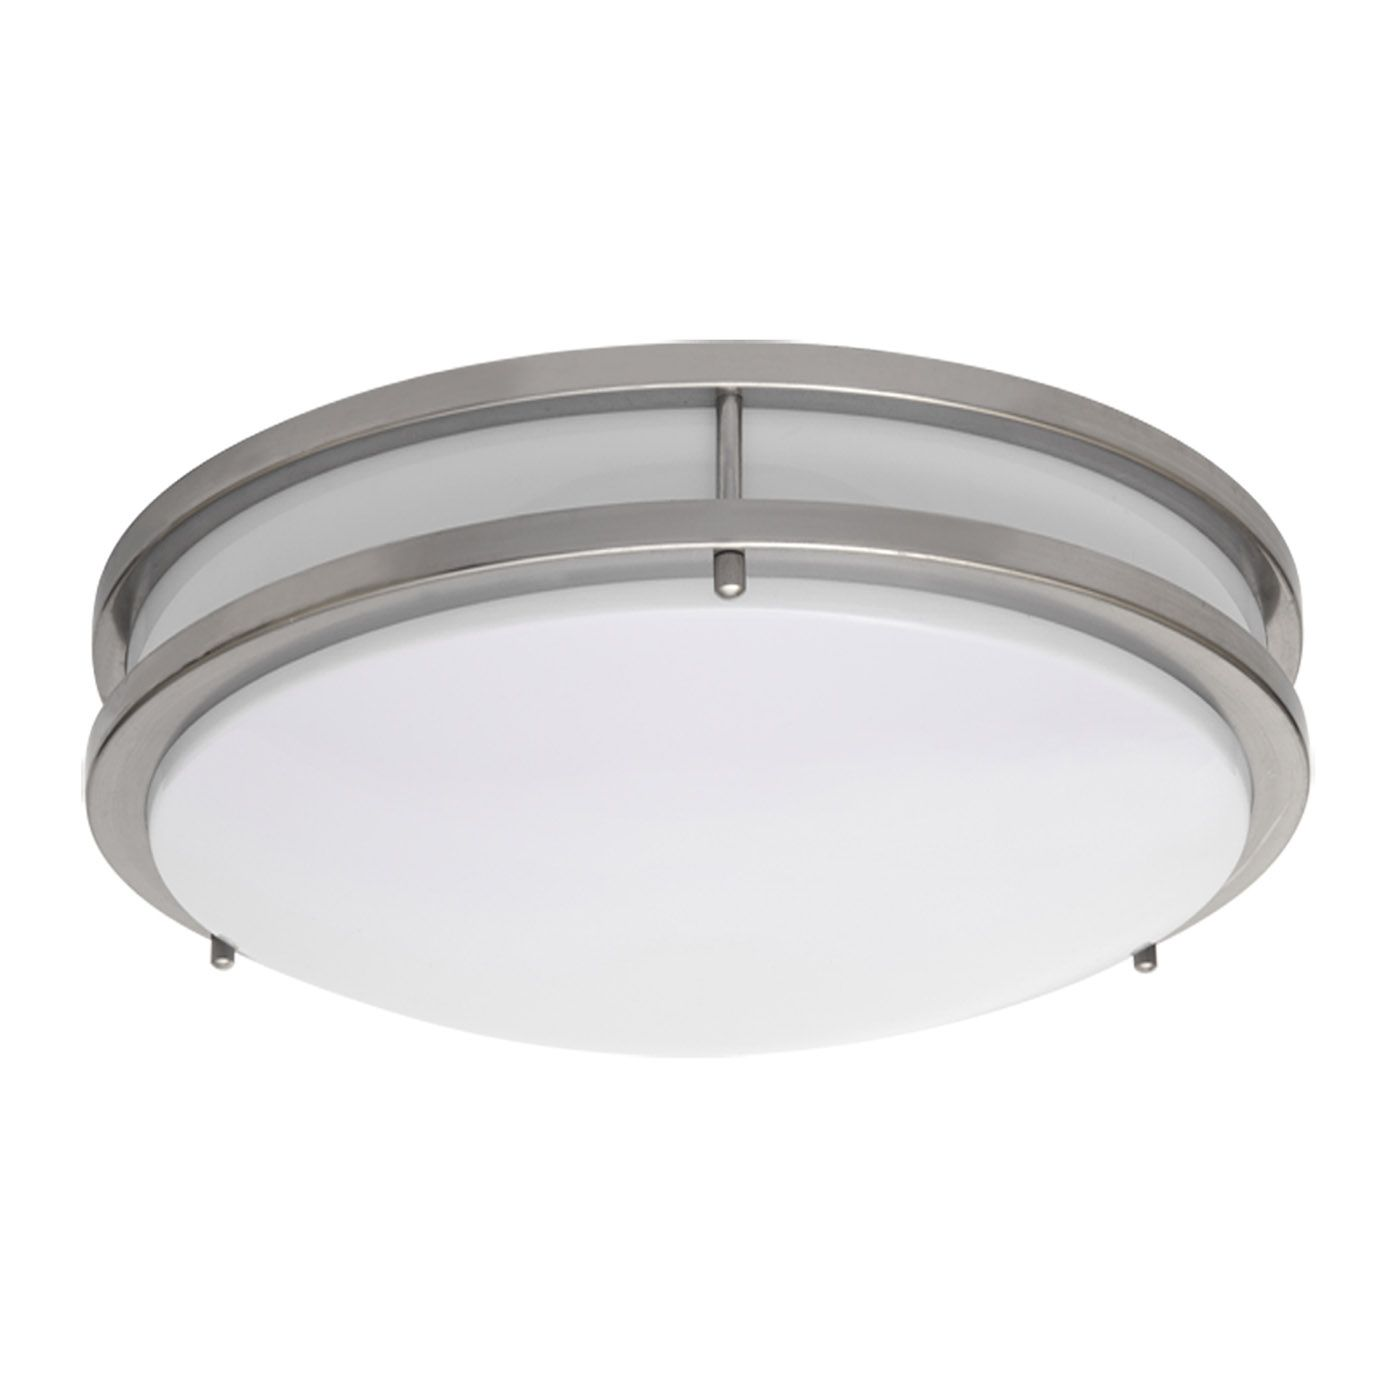 Light fixtures canada amax lighting led ceiling fixtures led jr00 led two ring flush